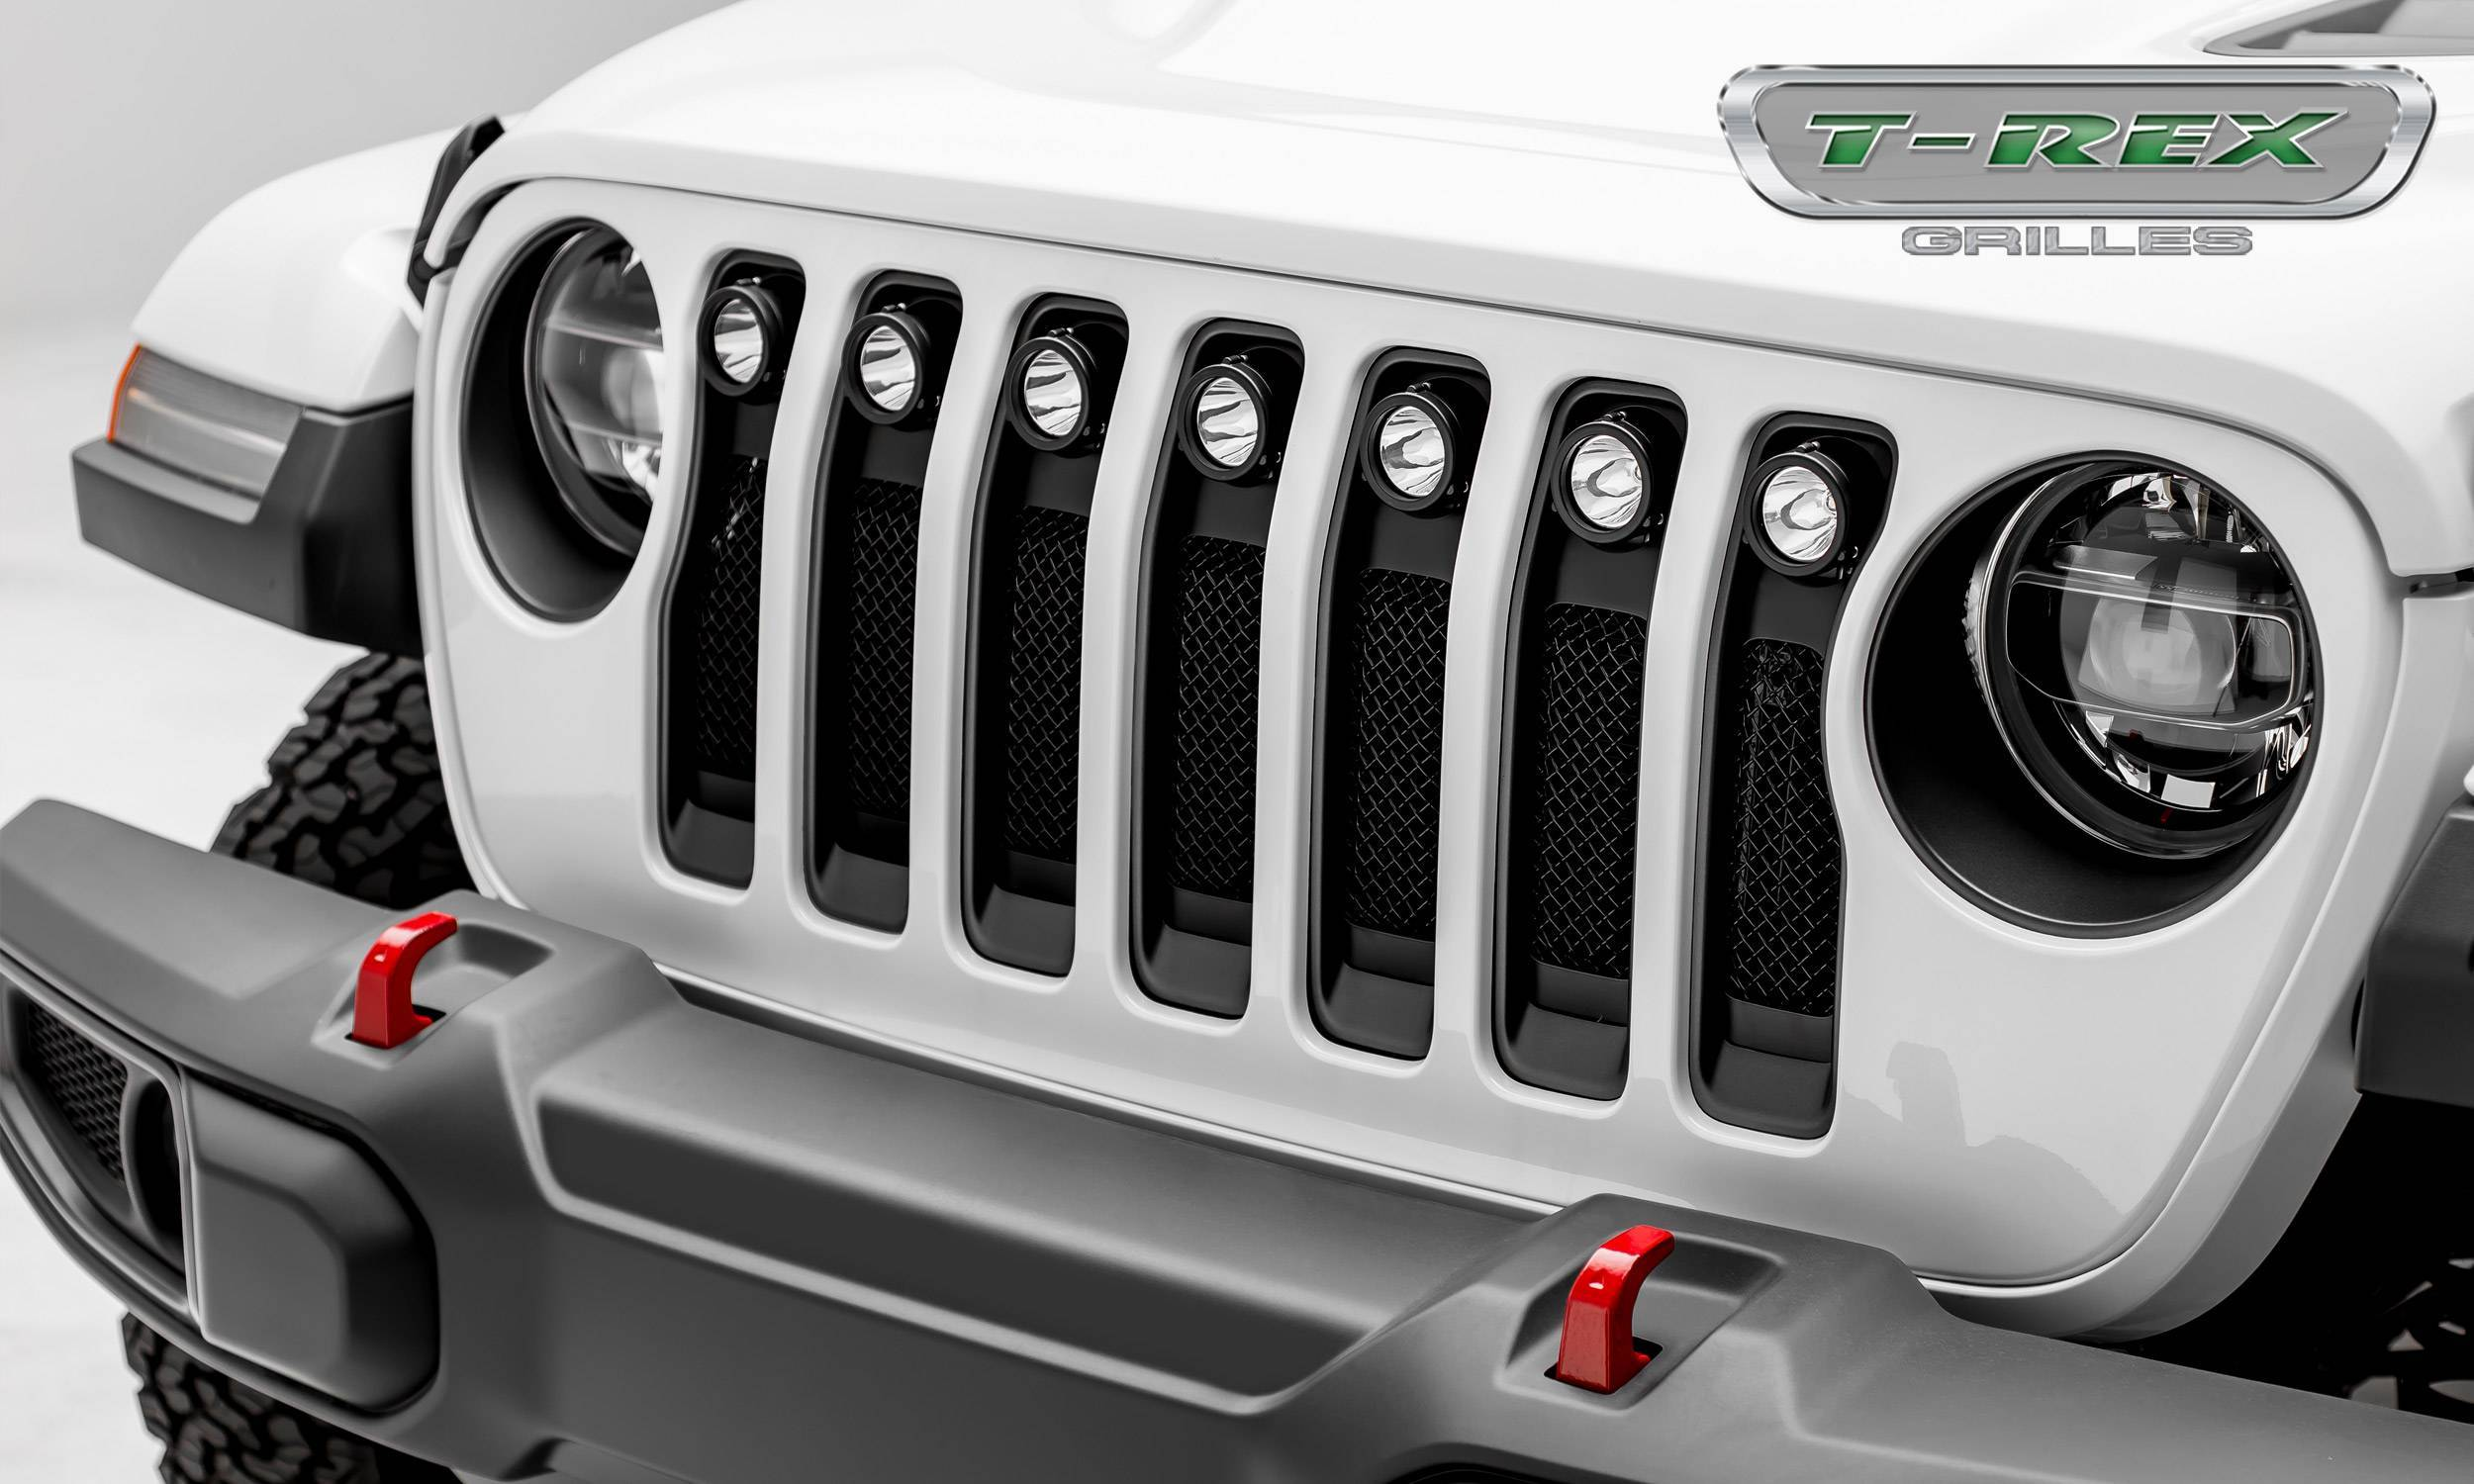 T-REX Grilles - Jeep Gladiator, JL Torch Grille, Black, 1 Pc, Insert with (7) 2 Inch LED Round Lights, Does Not Fit Vehicles with Camera - PN #6314941